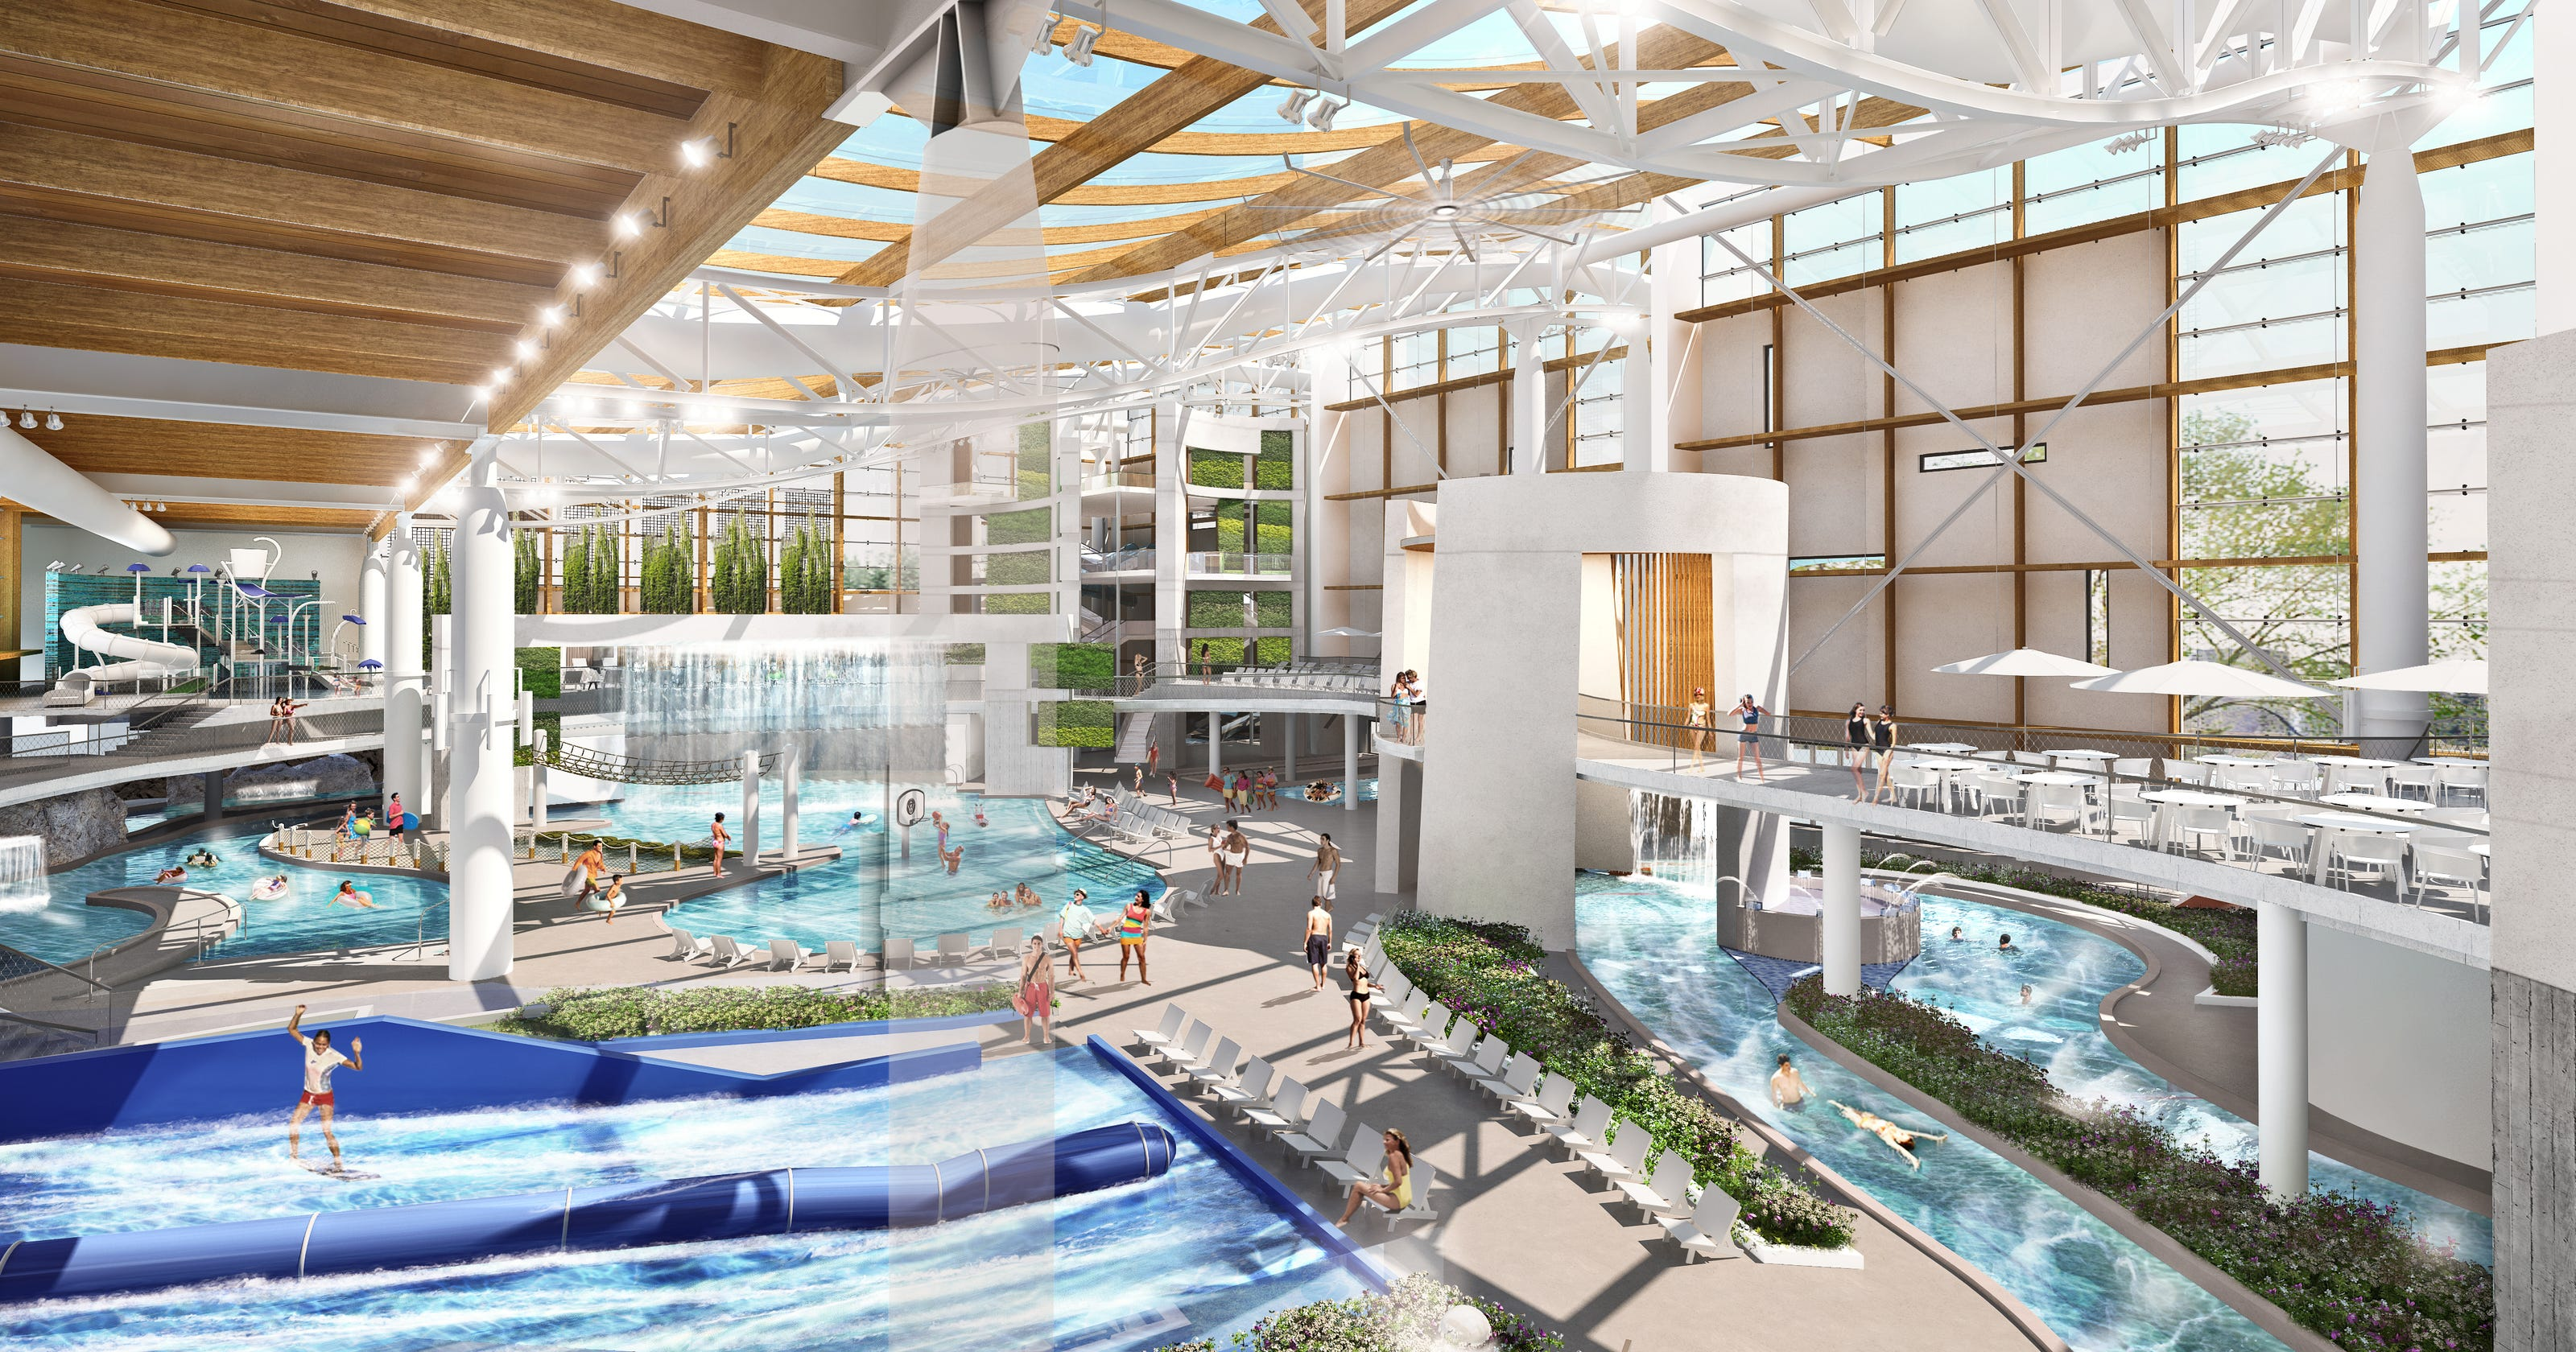 ryman to pour 90m into opryland water park. Black Bedroom Furniture Sets. Home Design Ideas